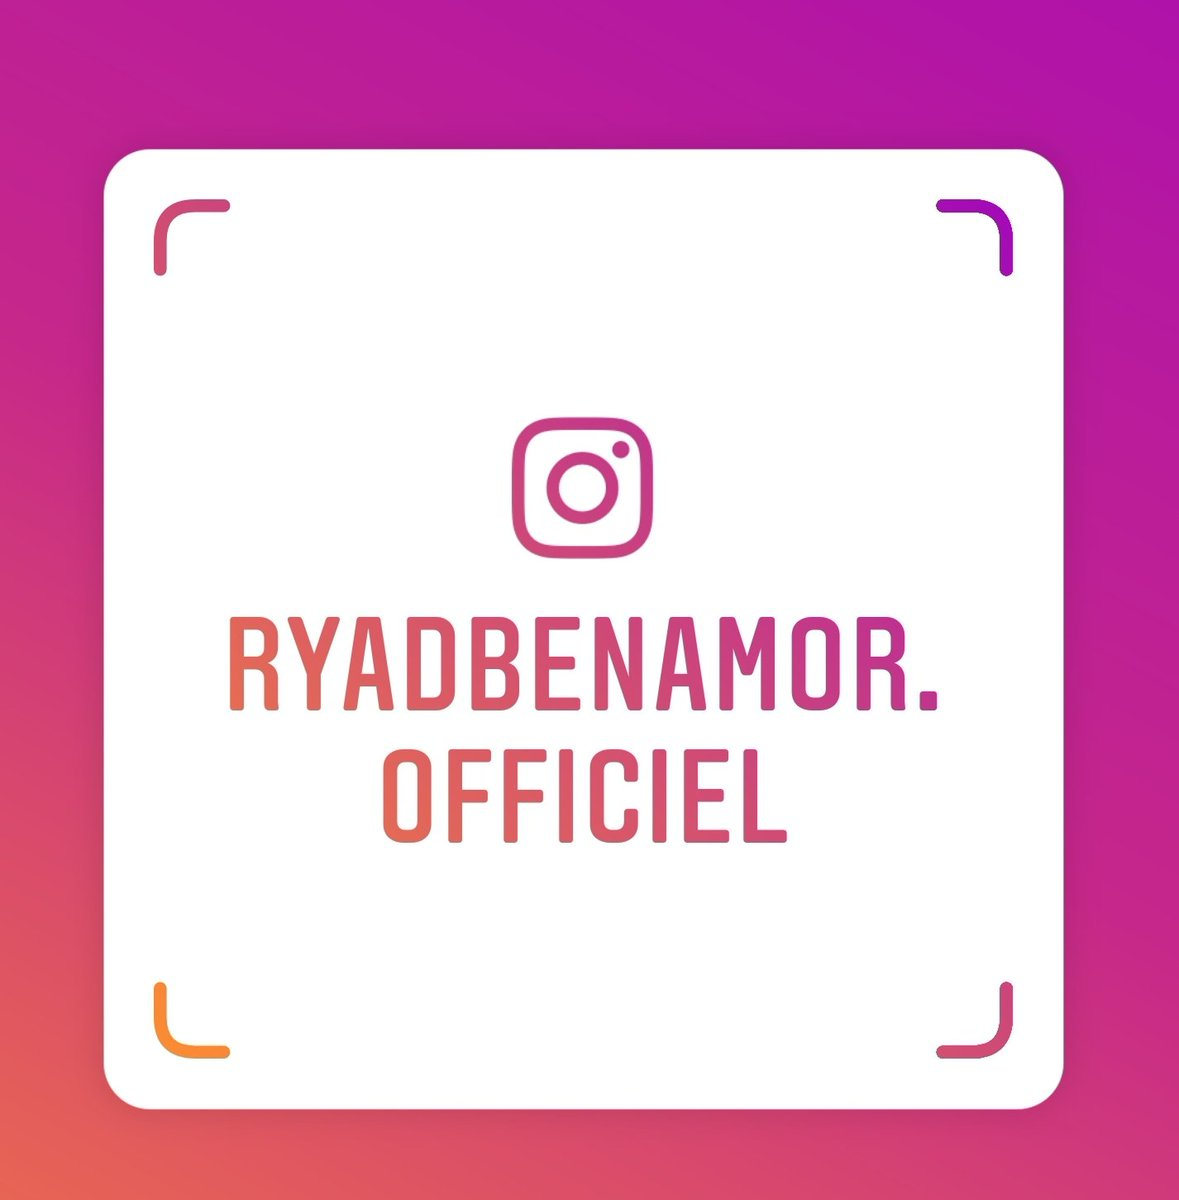 Abonnez-vous @Ryadbenamor.officiel https://t.co/b89Dyn7dex